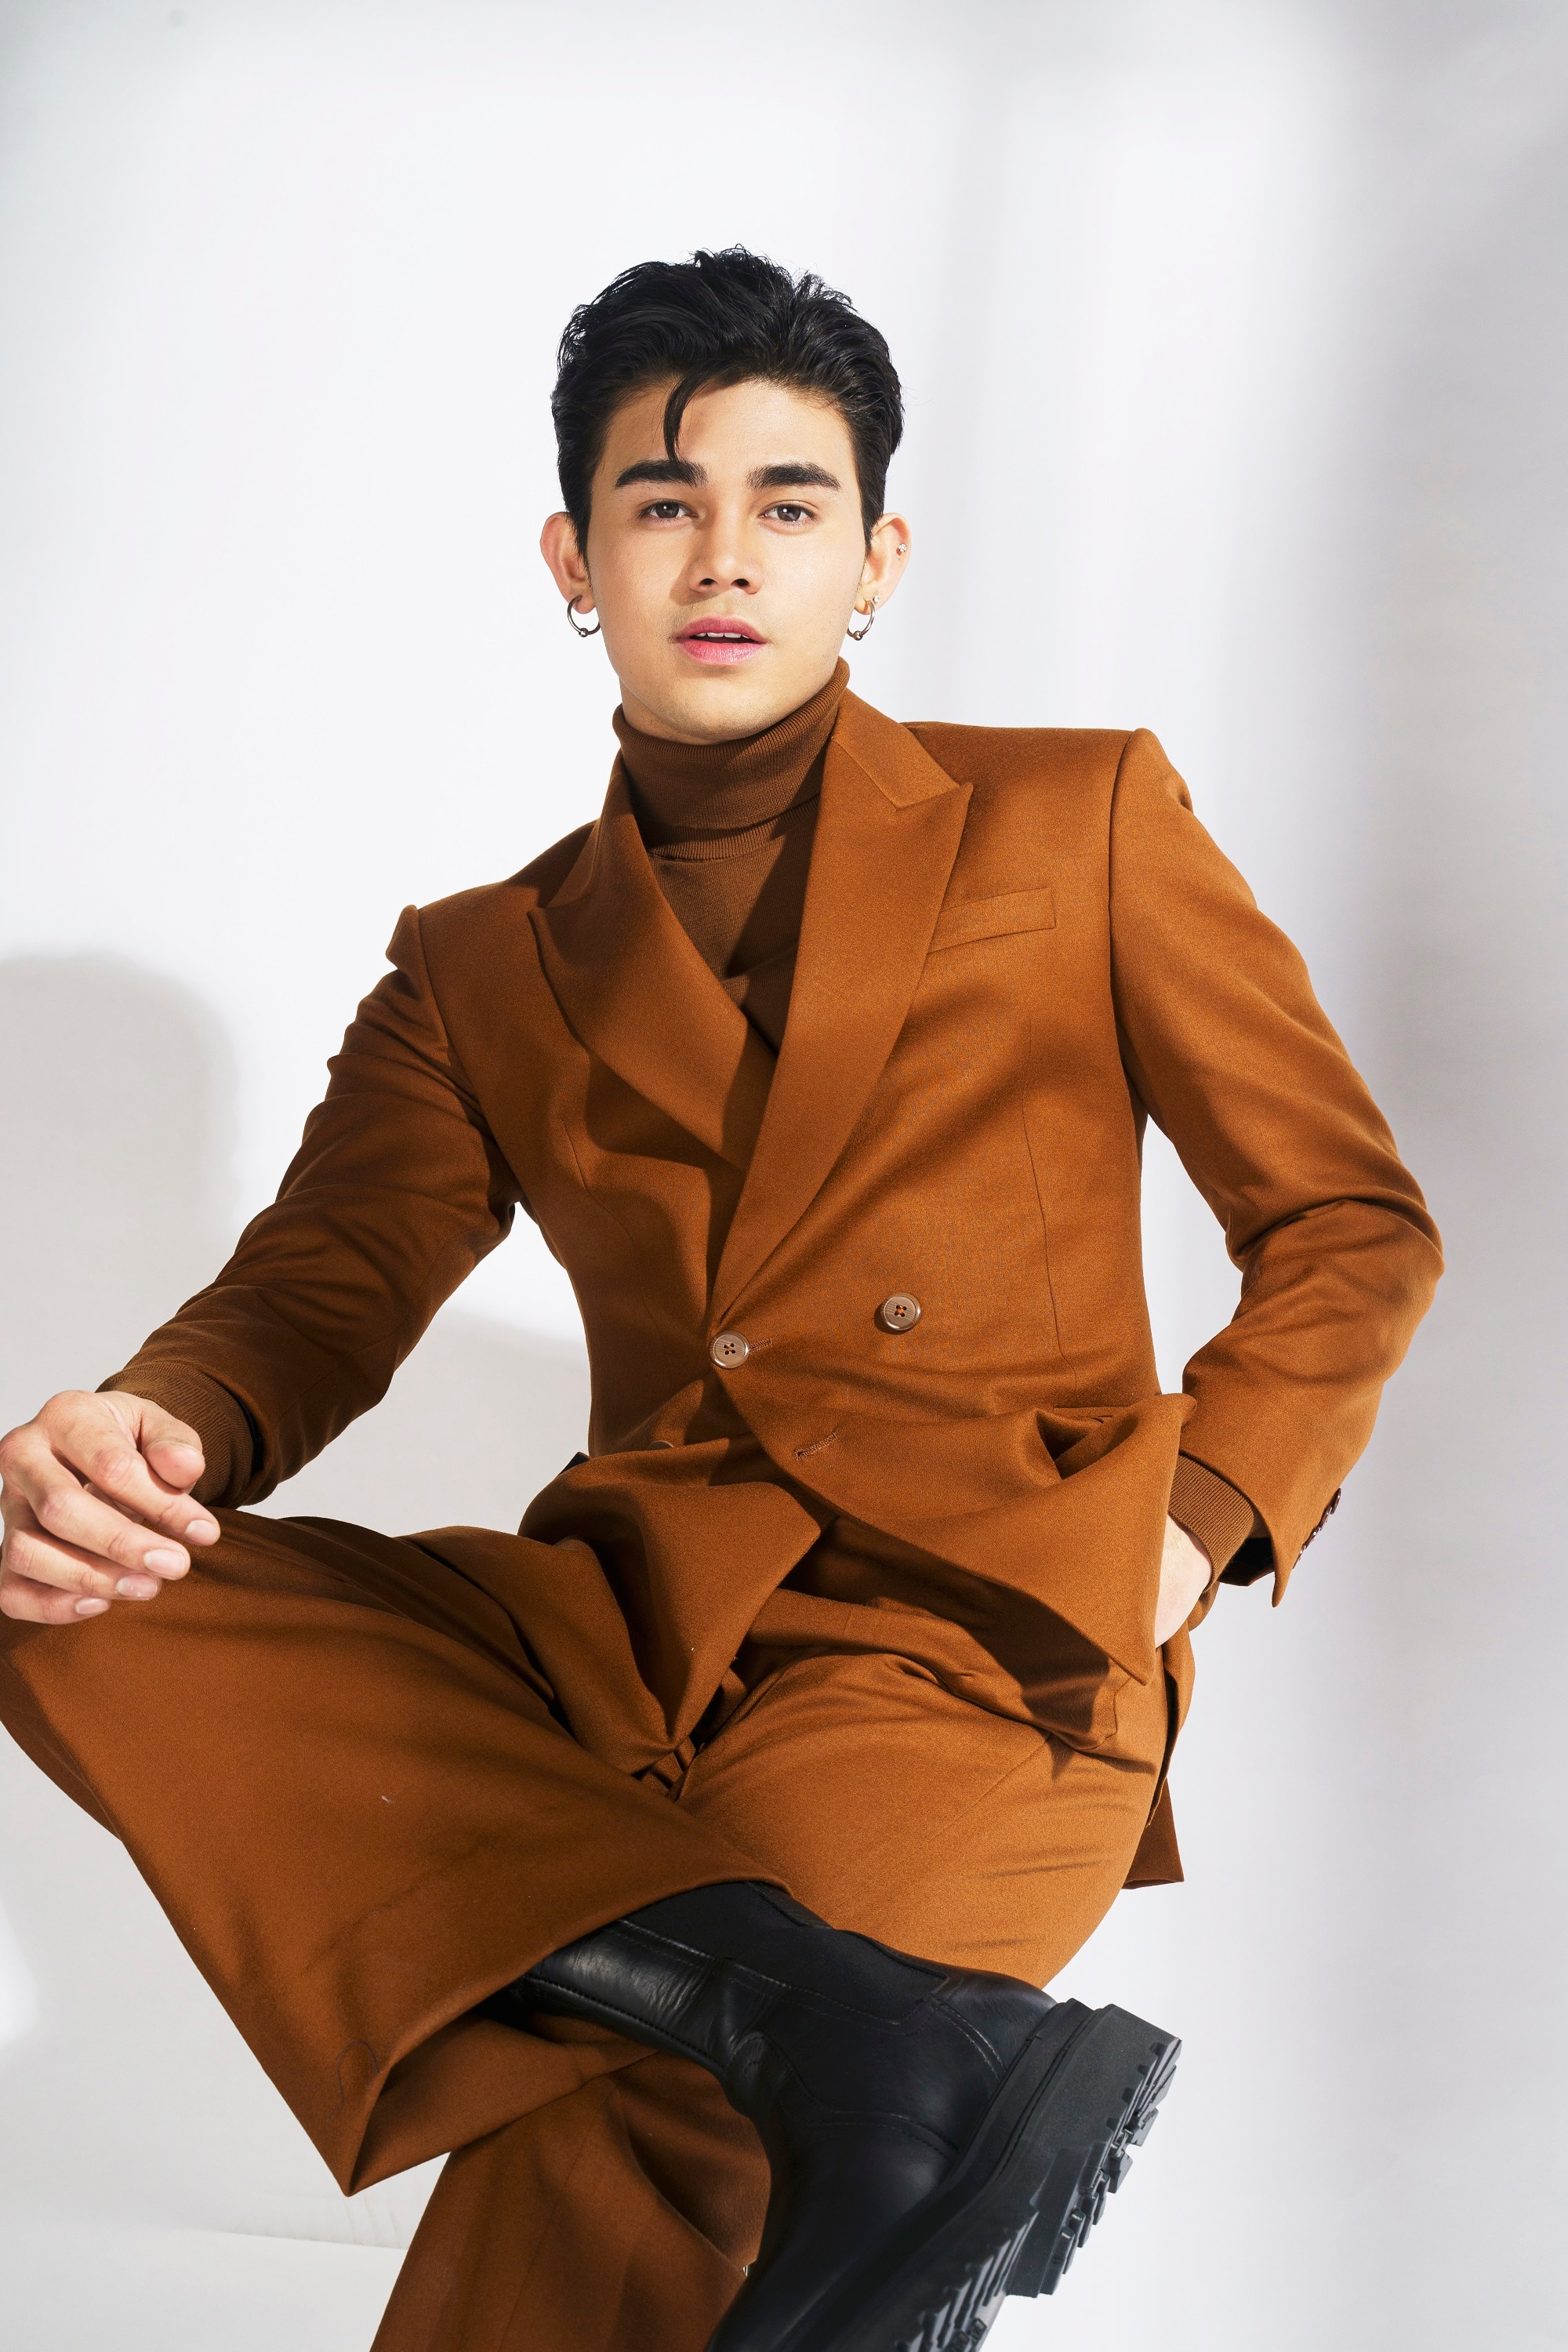 Inigo Pascual All Out of Love (1)